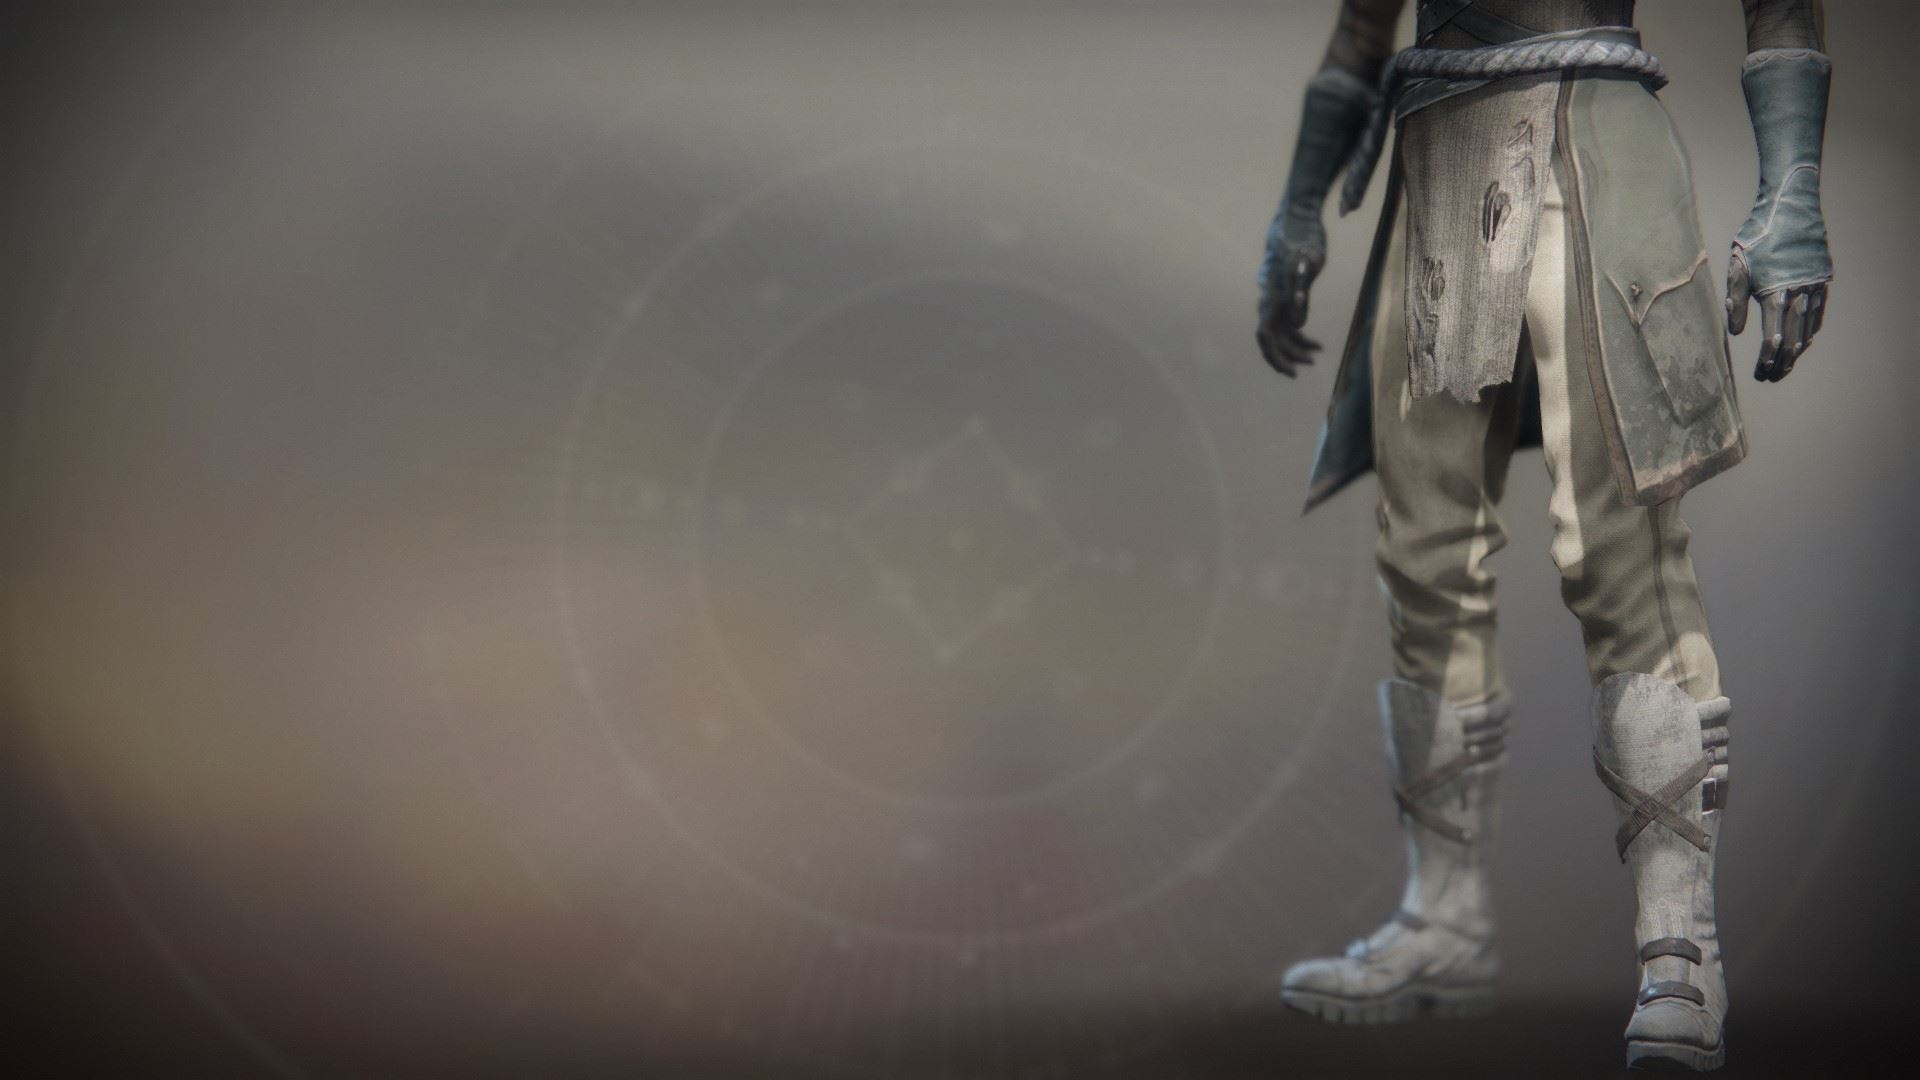 An in-game render of the Solstice Boots (Rekindled).